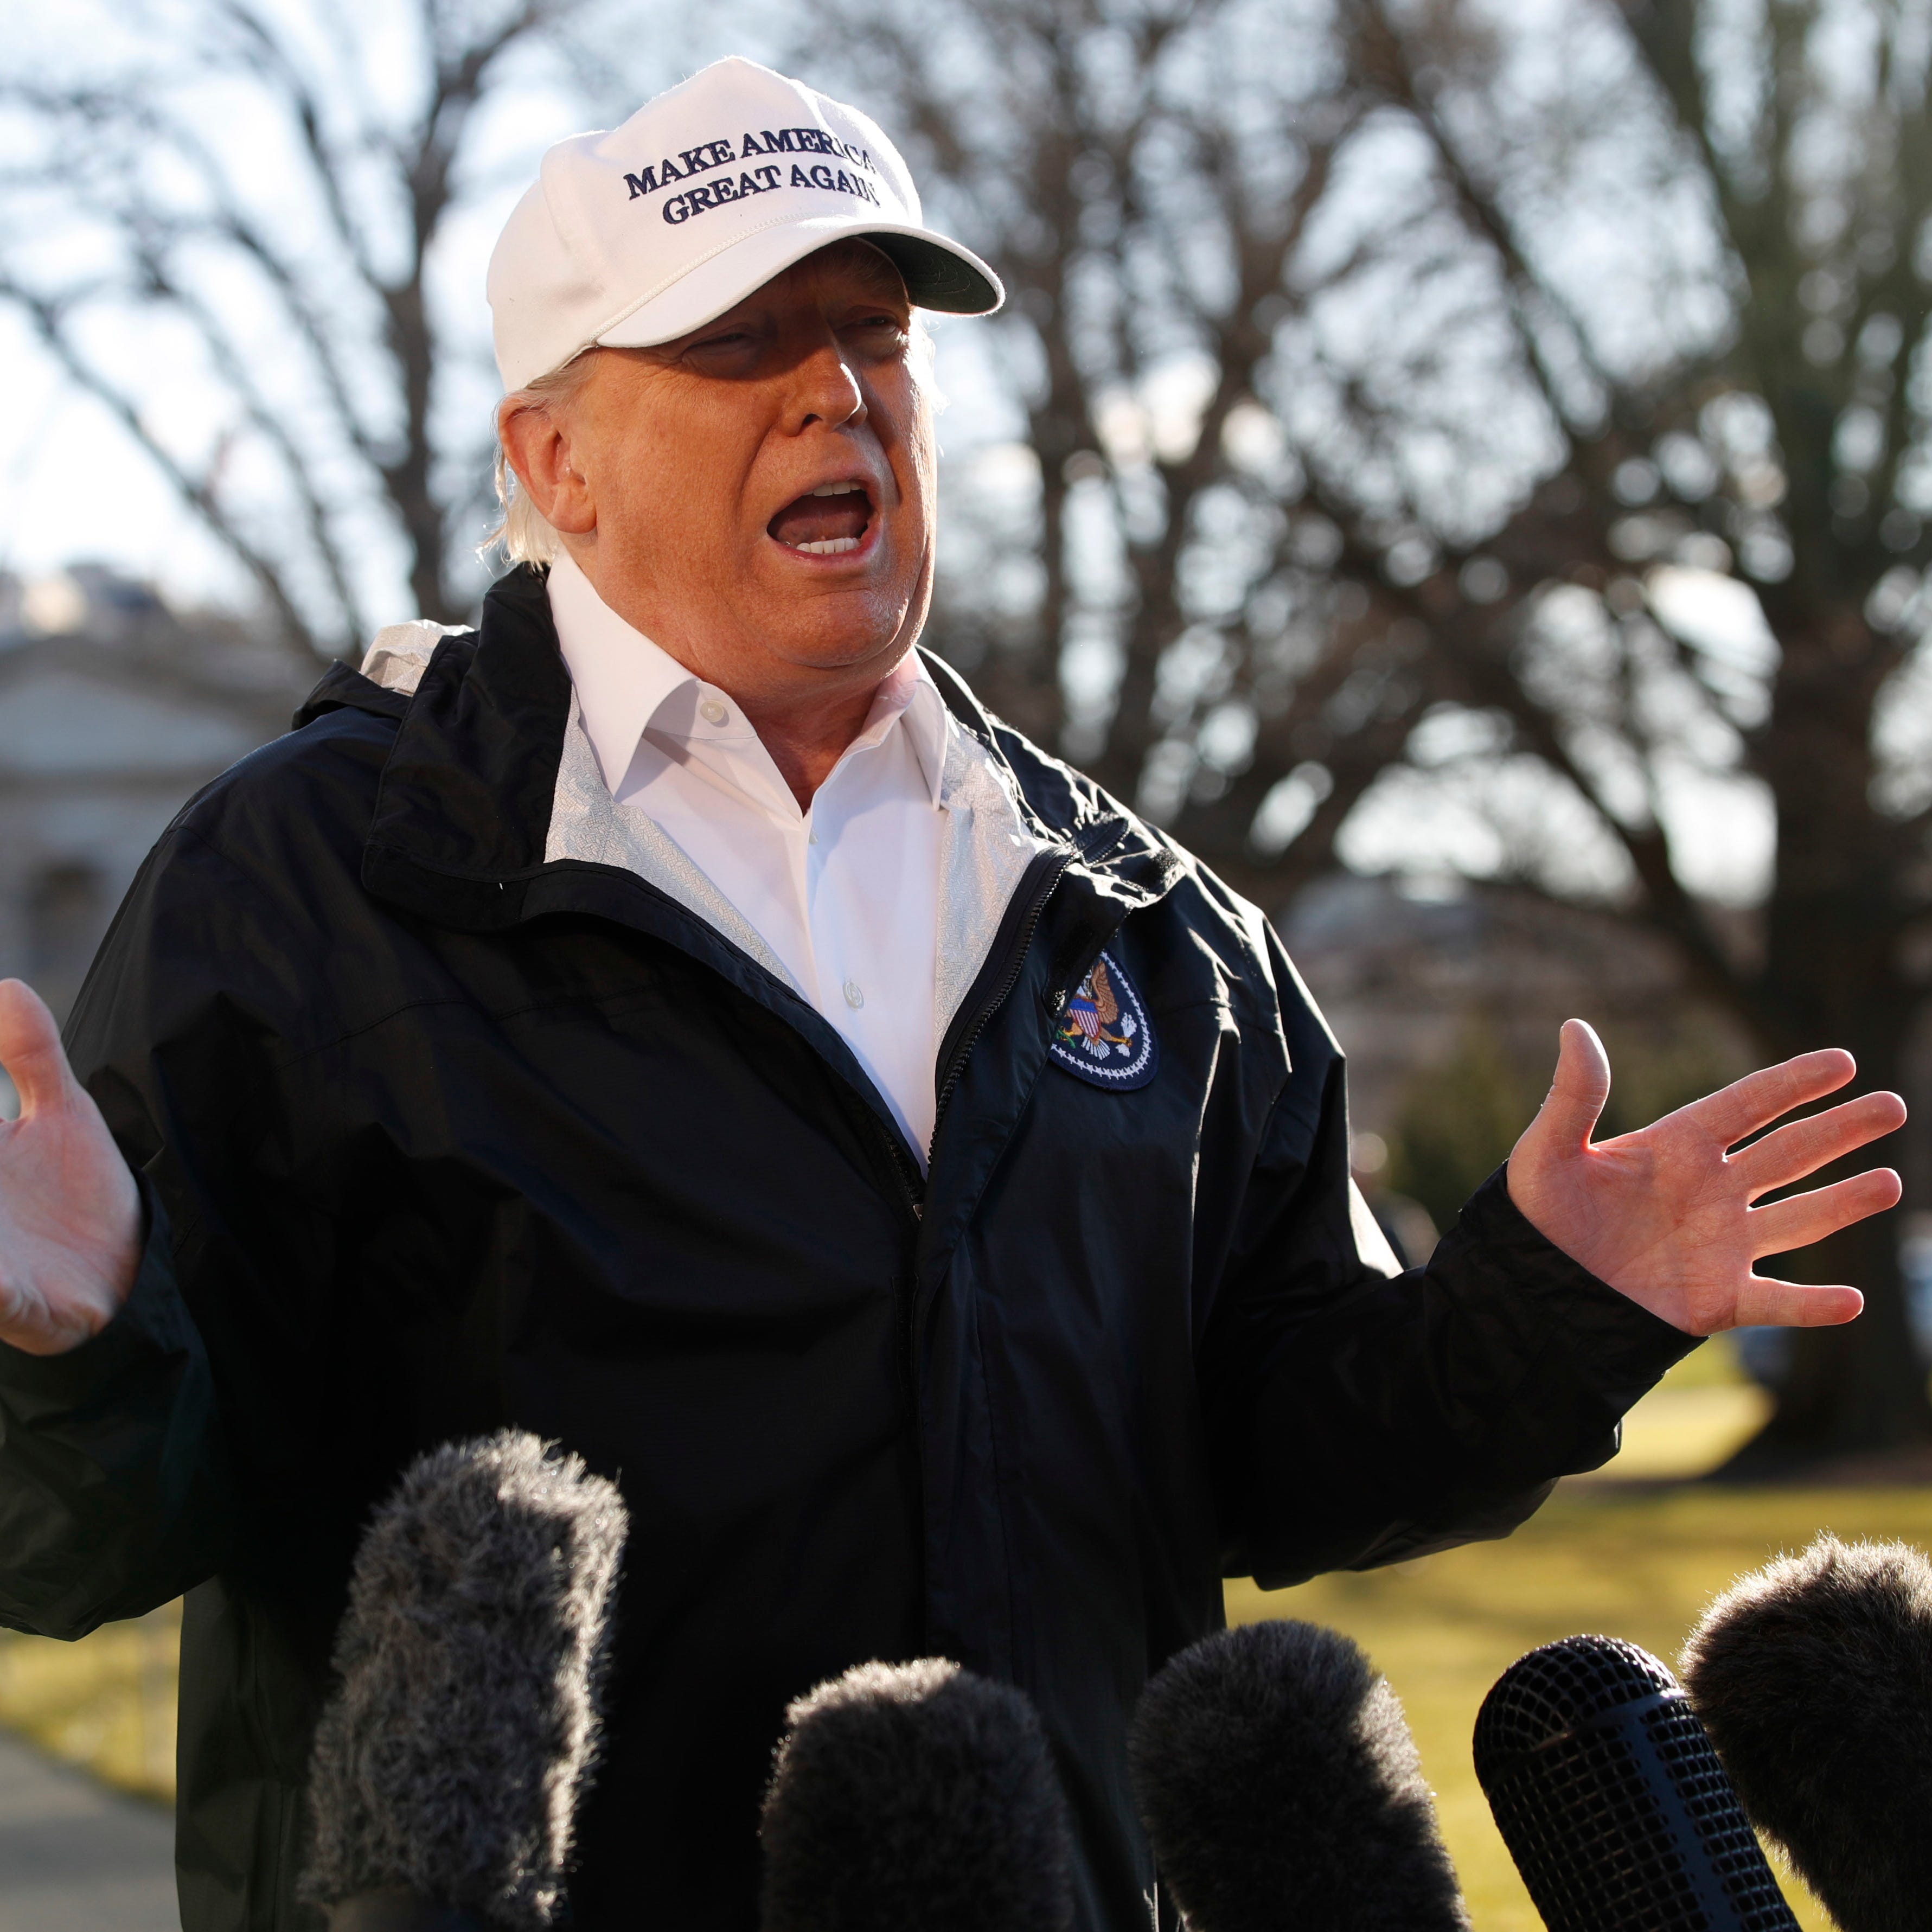 President Donald Trump speaks to the media as he leaves the White House on Jan. 10, 2019, in Washington, en route for a trip to the border in Texas as the government shutdown continues.